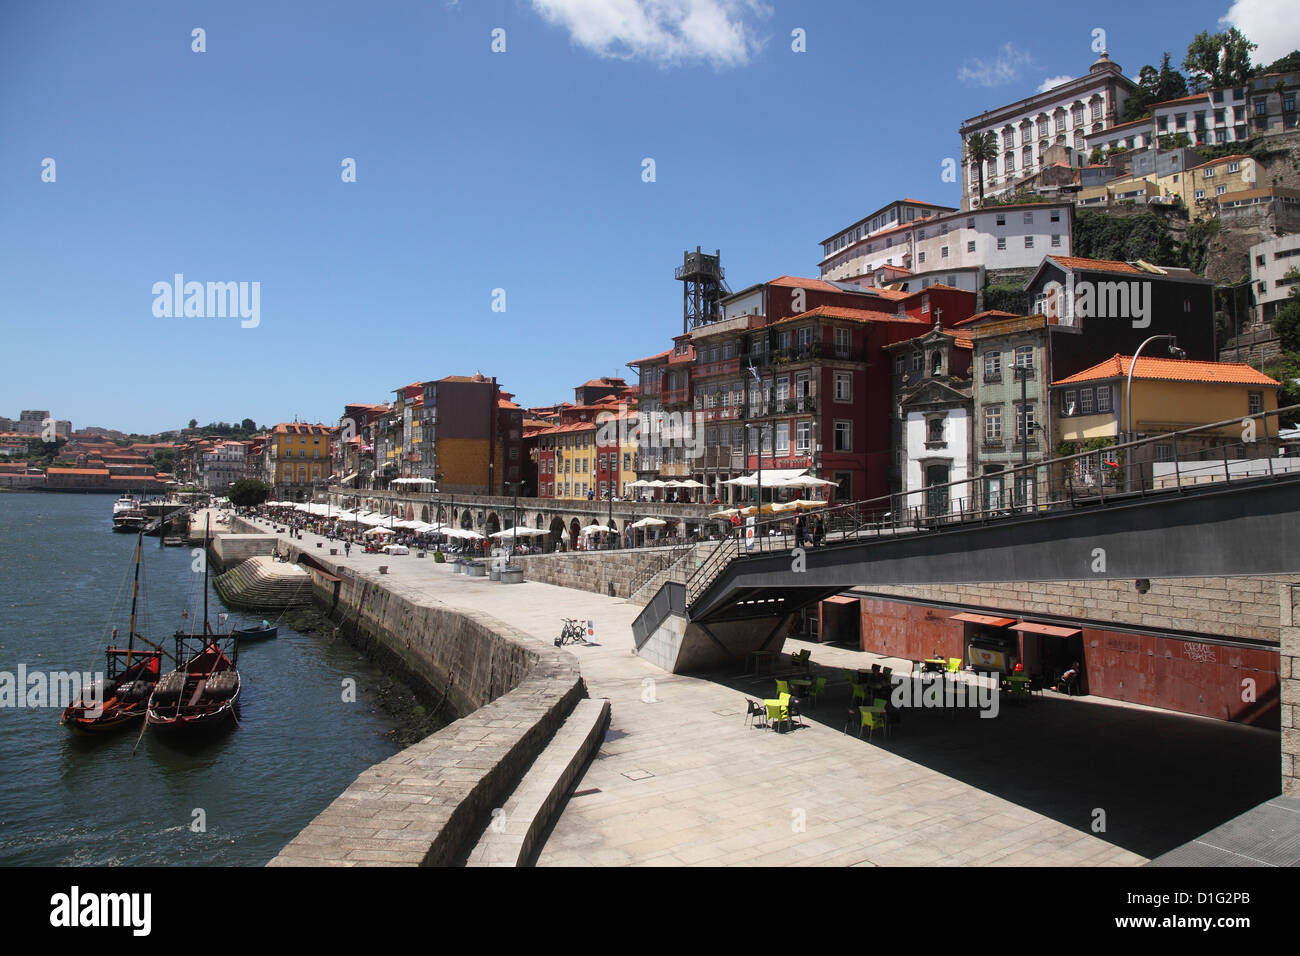 The River Douro runs alongside the Ribeira District, UNESCO World Heritage Site, Porto, Douro, Portugal, Europe - Stock Image